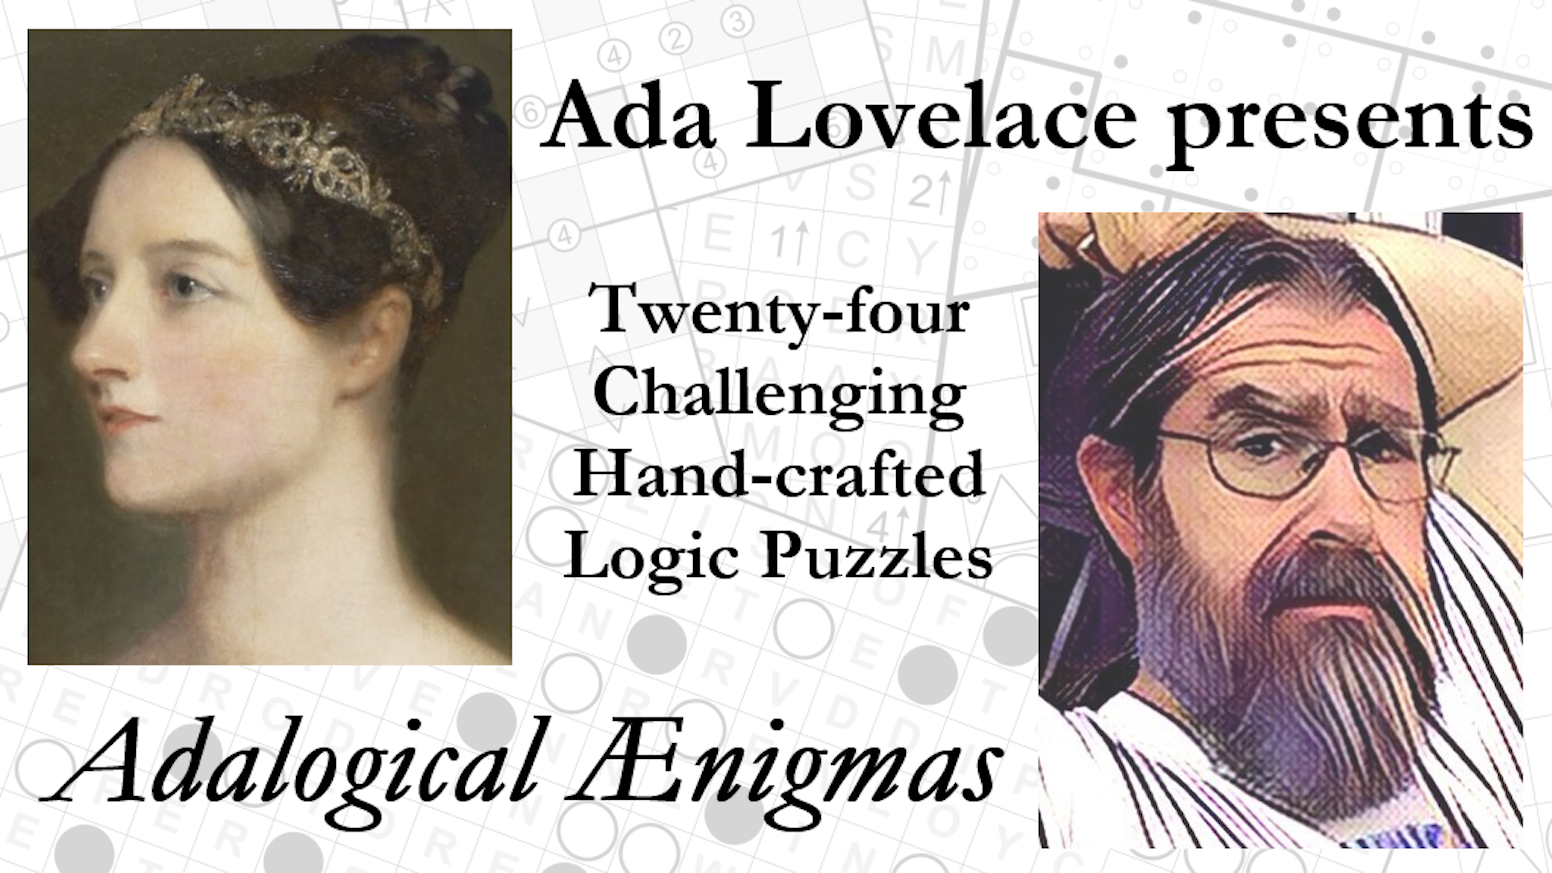 Countess Ada Lovelace brings you all of the challenging logic puzzles from the first two years of her Adalogical Ænigmas series!